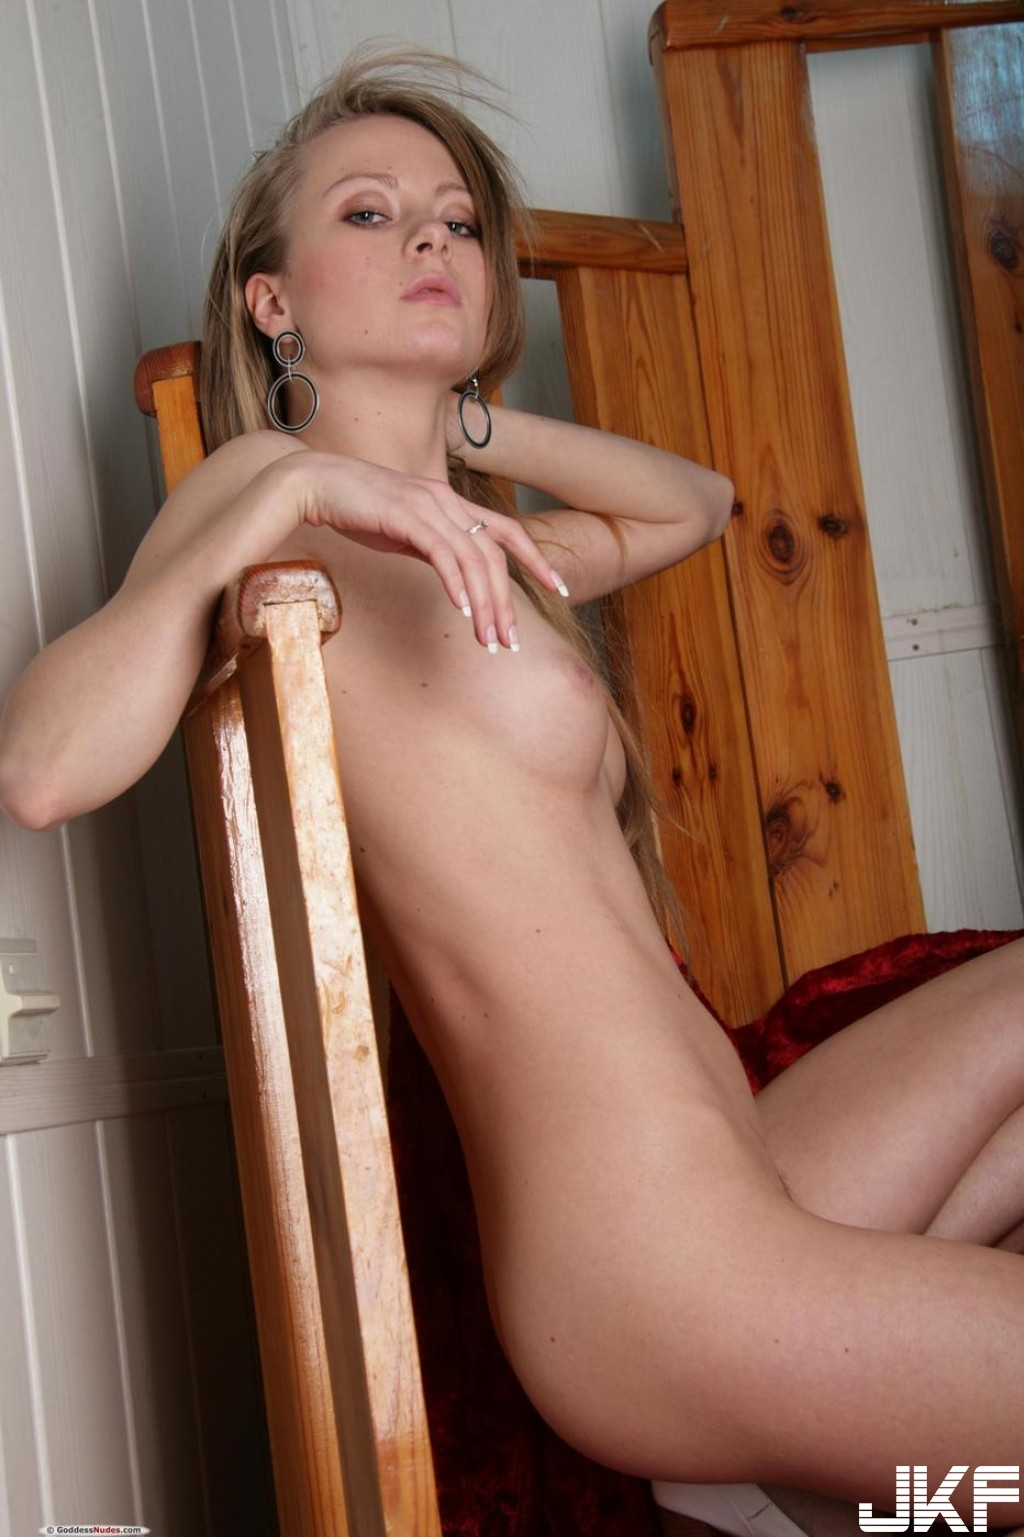 Shaved-Frances-A-with-Perky-Tits-10.jpg